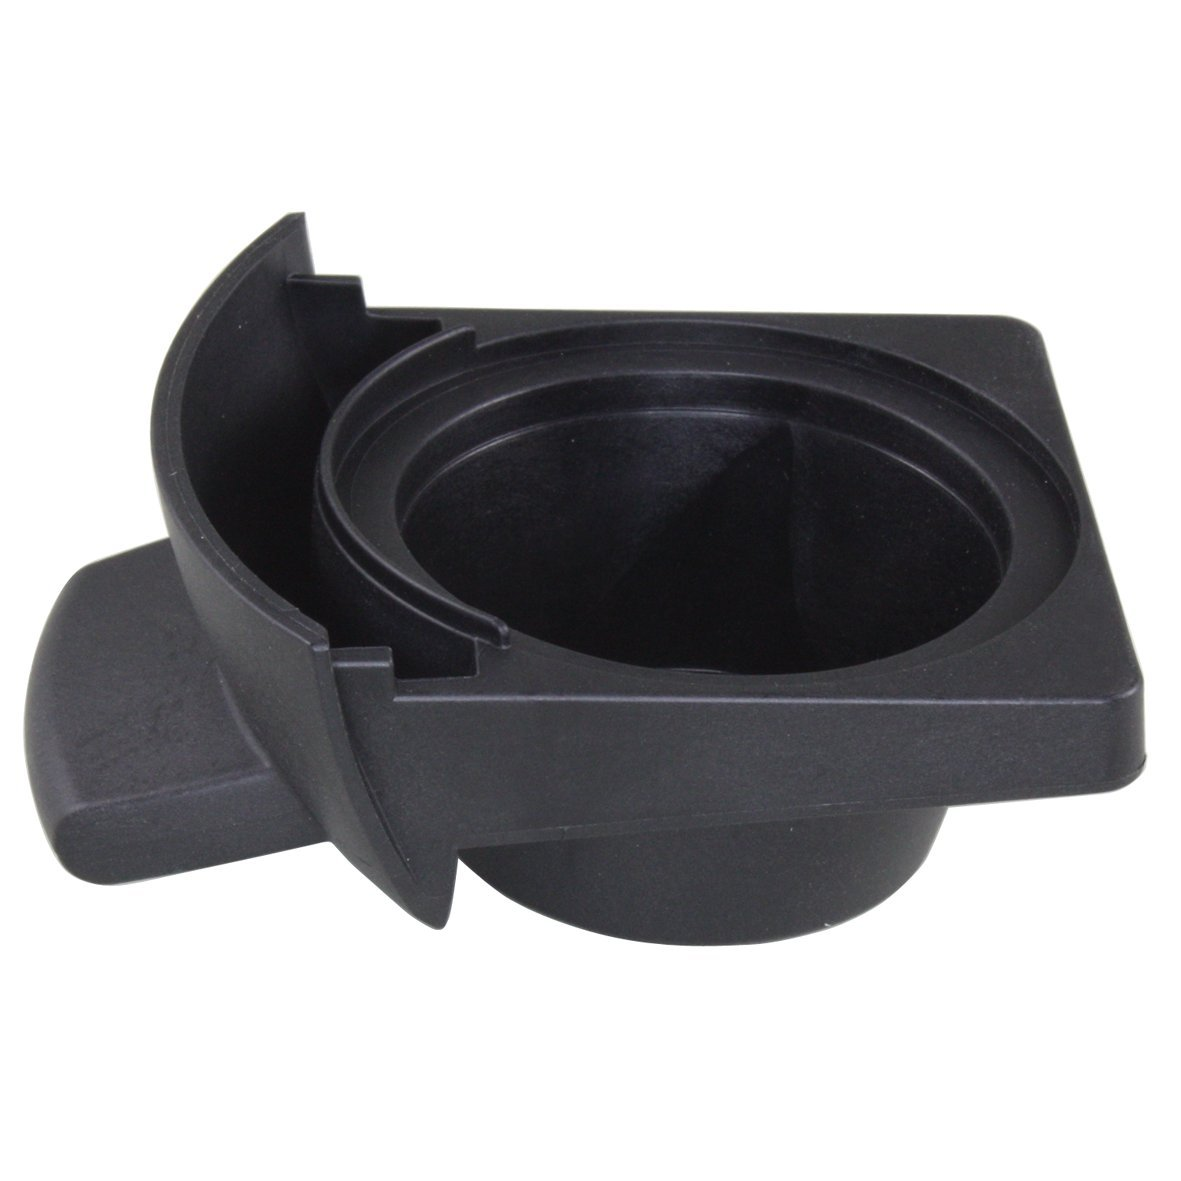 Dolce Gusto 2720622727 capsule holder suitable for KP 1000, 1002